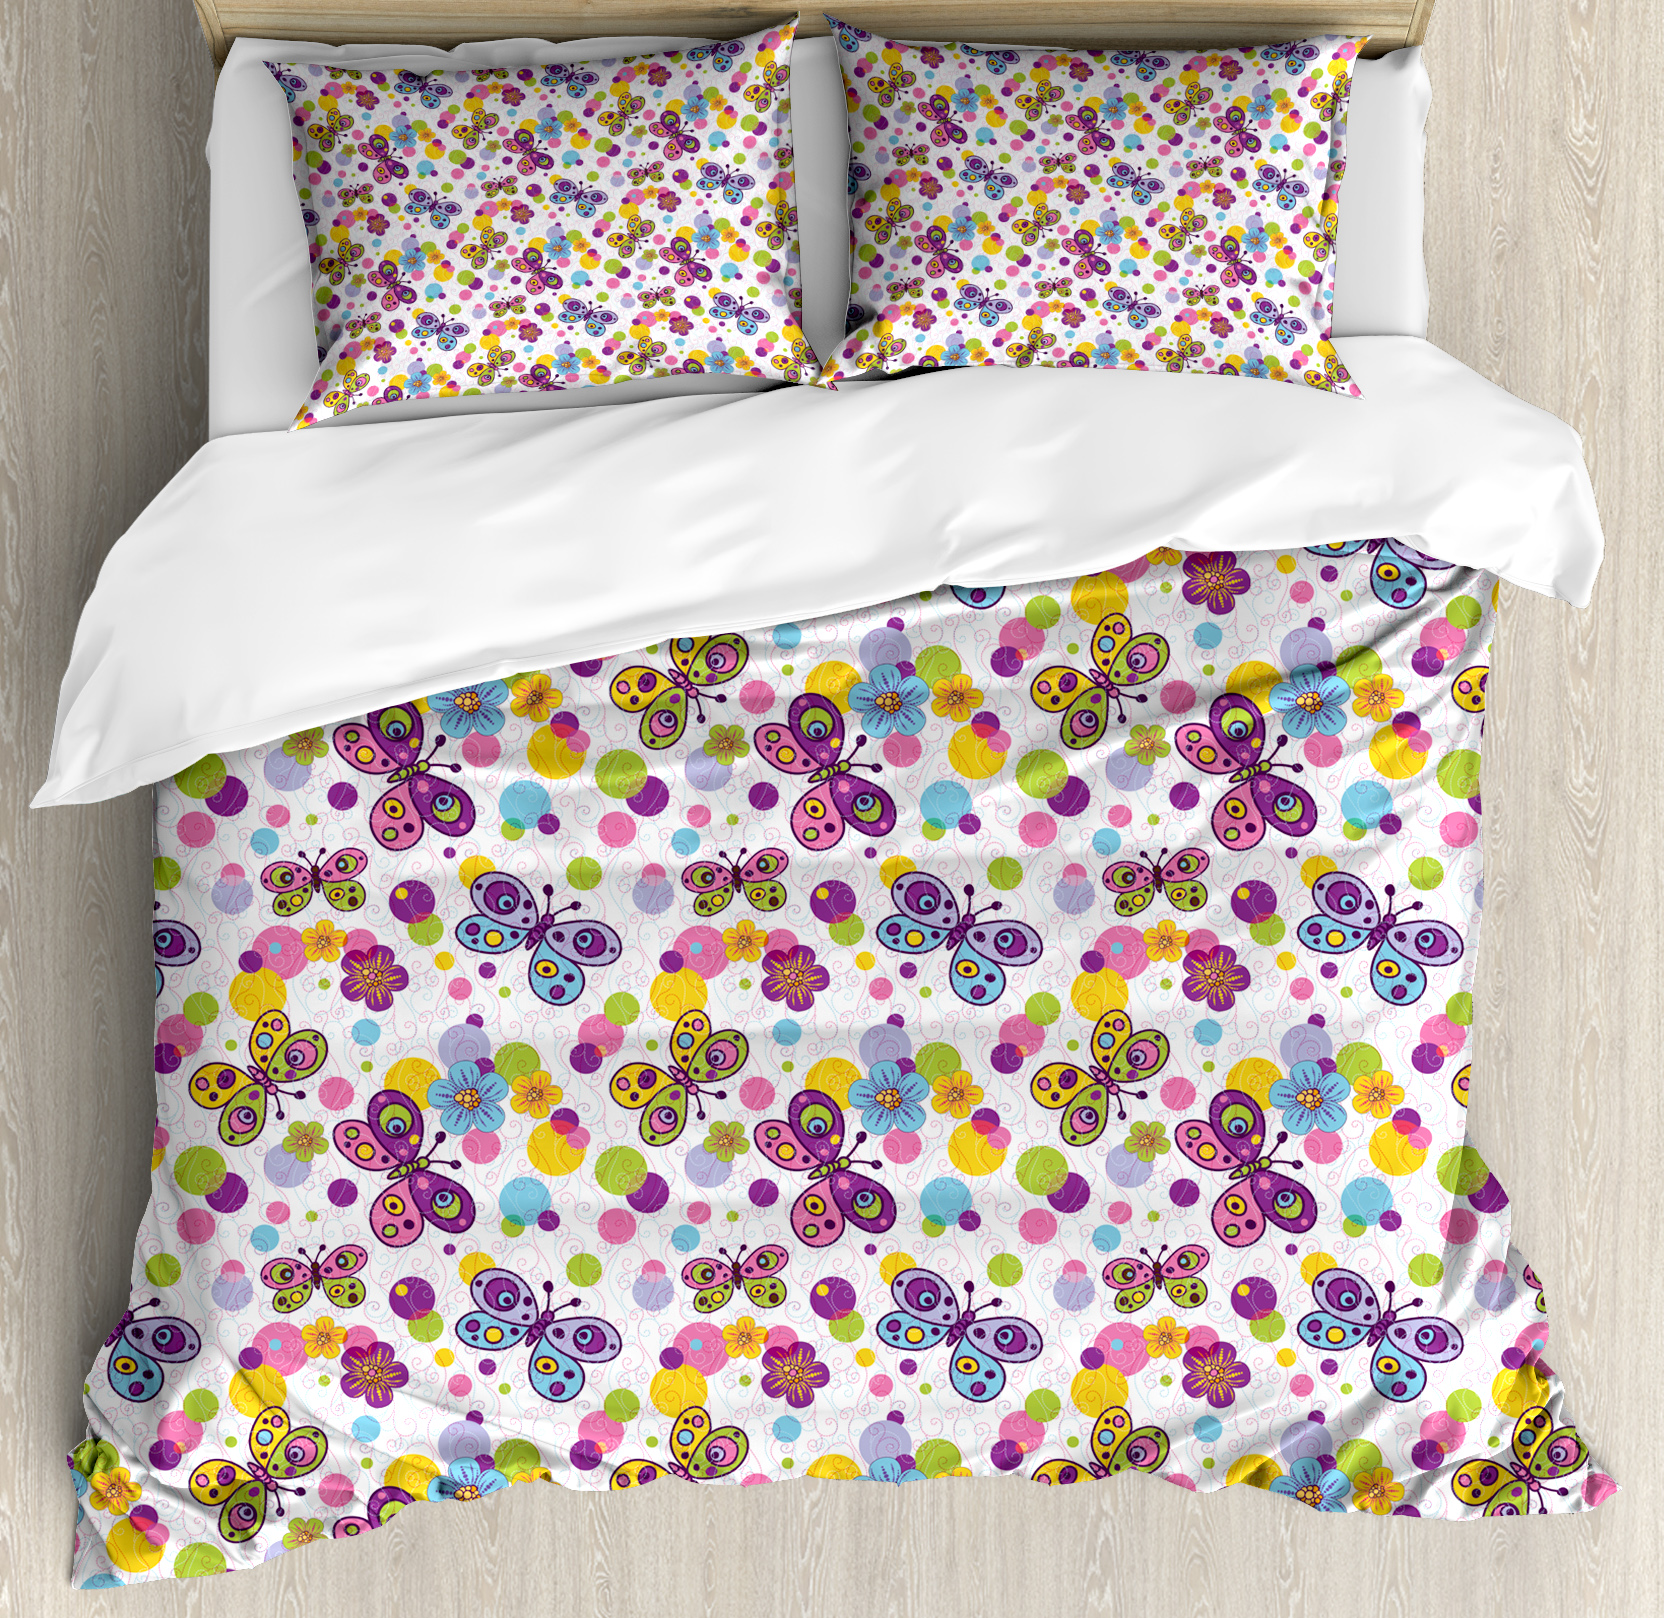 Patterned Duvet Cover Butterfly Queen Size Duvet Cover Set Vibrant Flora Patterned And Polka Dotted Background With Vintage Inspired Animals Decorative 3 Piece Bedding